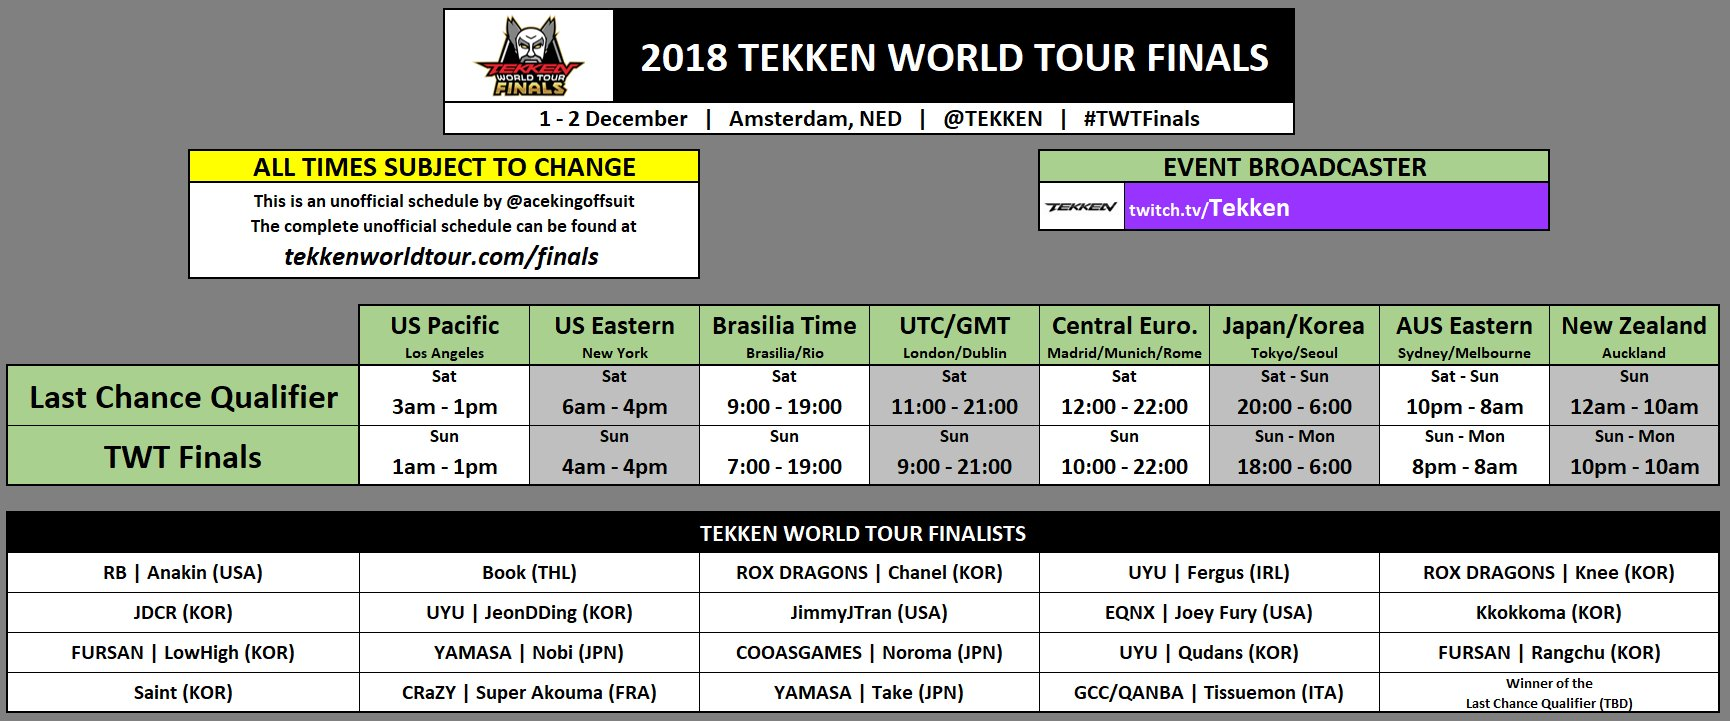 Tekken World Tour 2018 Event Schedule 1 out of 1 image gallery